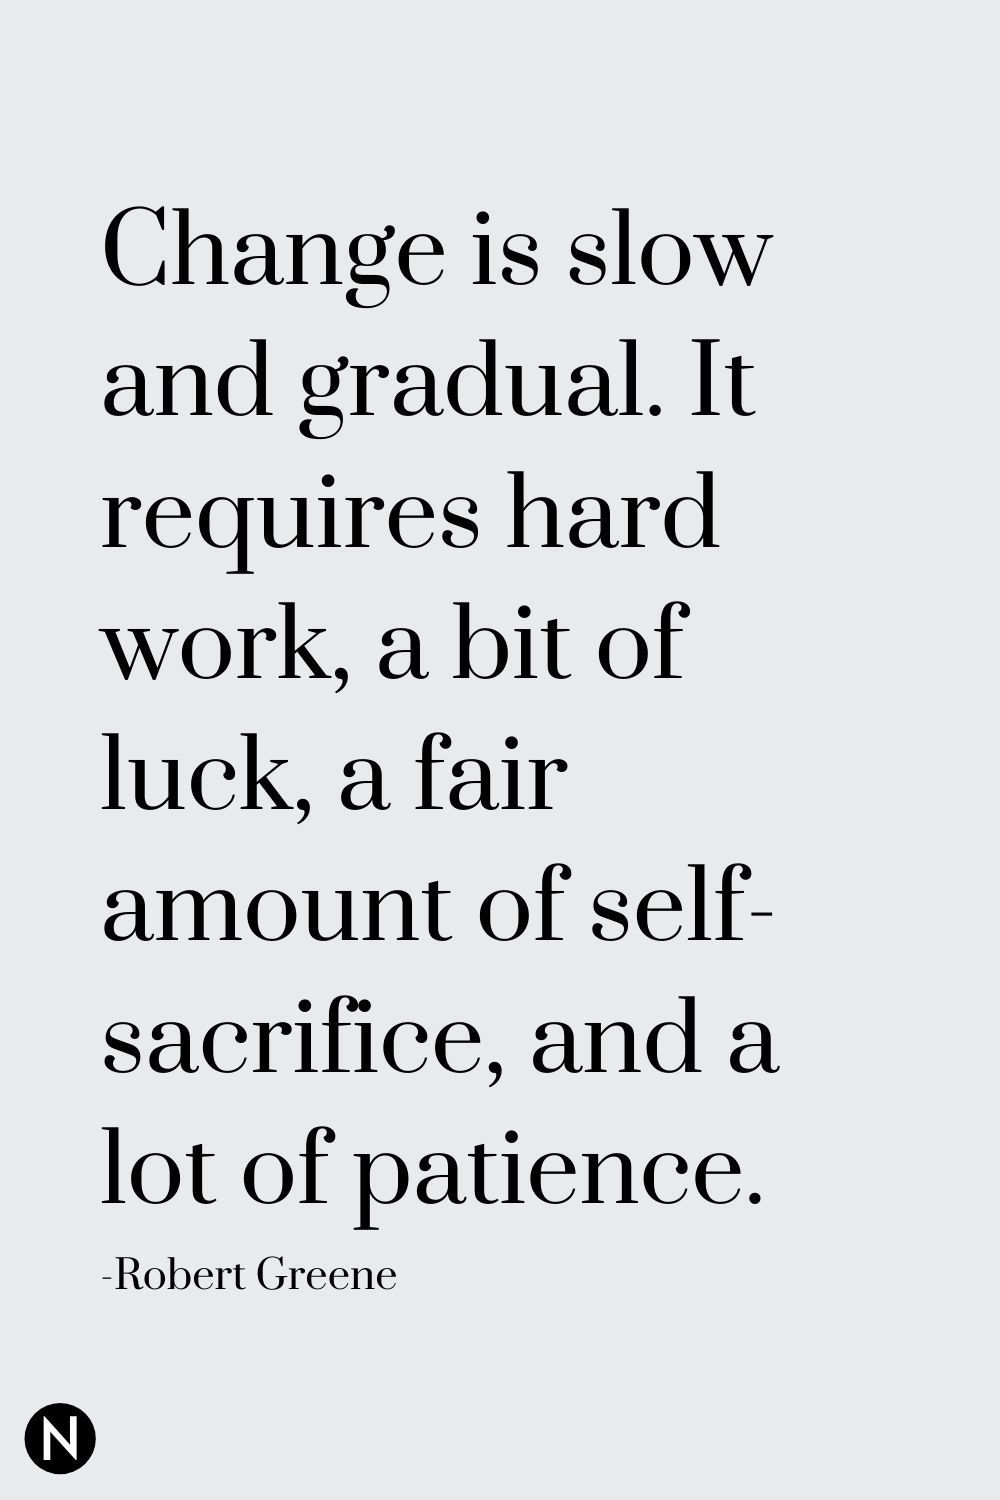 30 great quotes about being patient - Next Level Gents